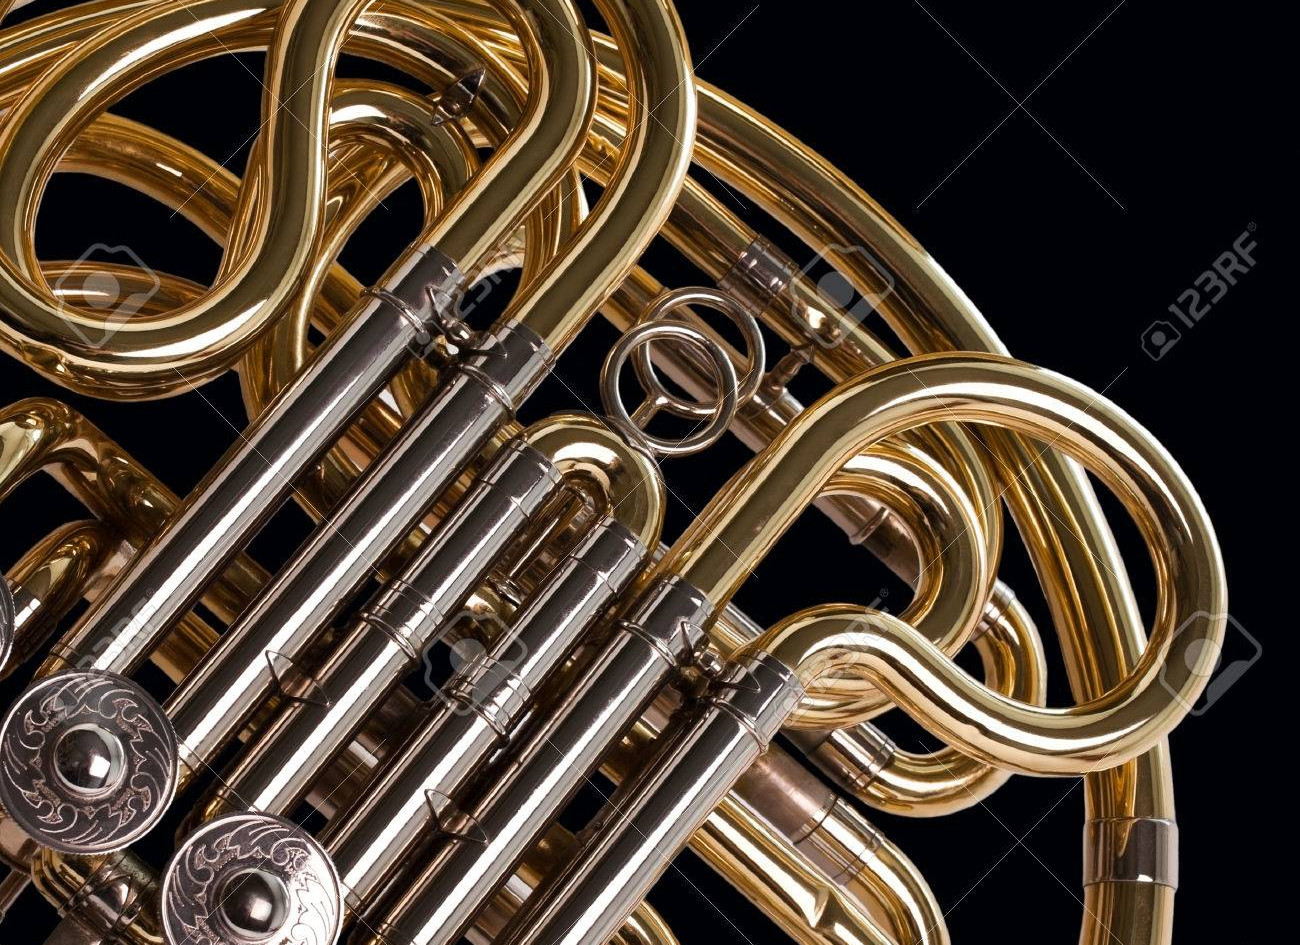 71522511-fragment-french-horn-closeup-on